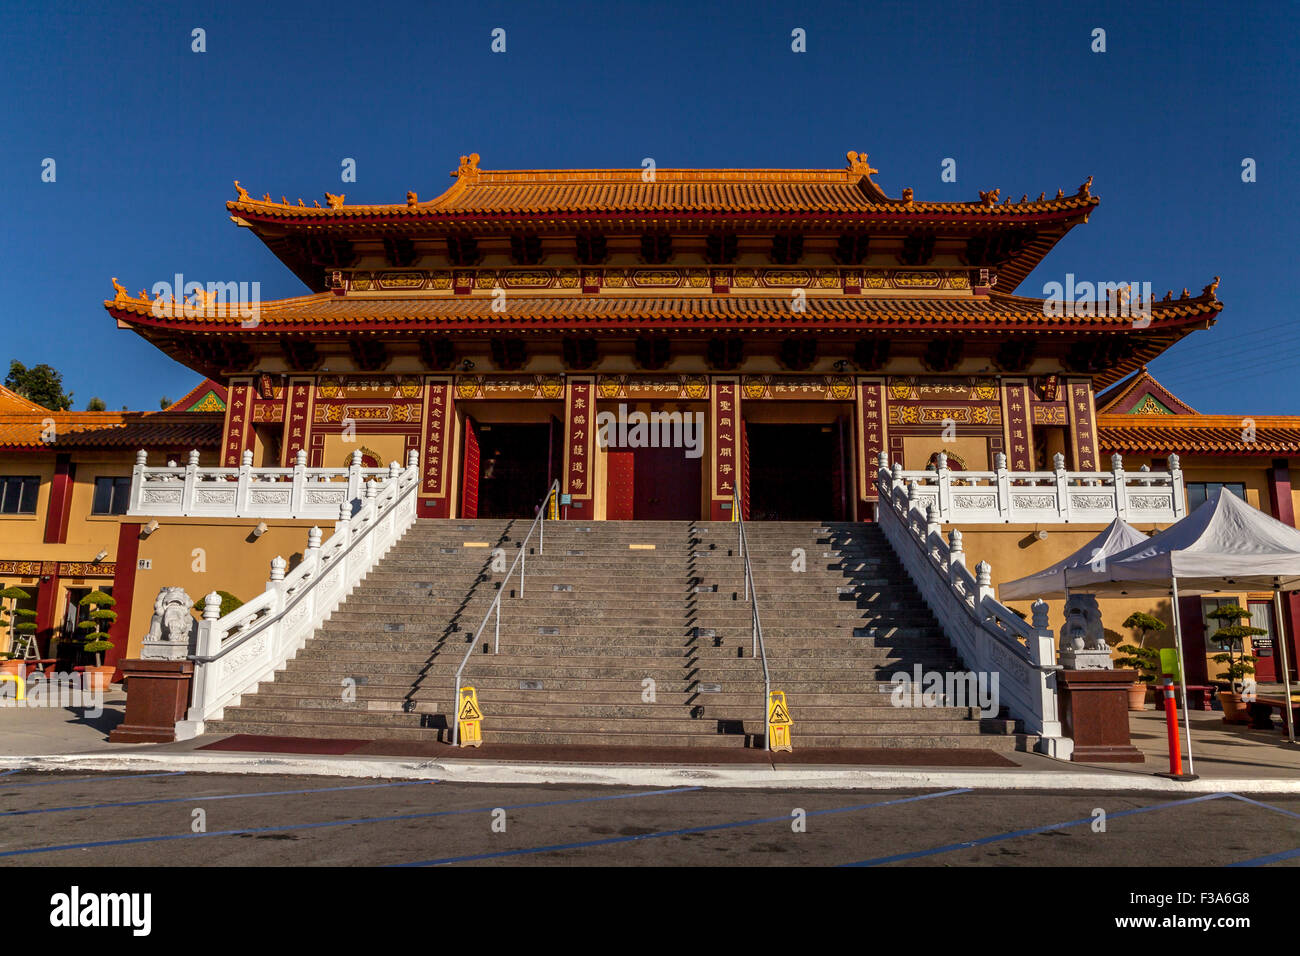 Front entrance of the Hsi Lai Buddhist Temple, Hacienda Heights, California, USA Stock Photo